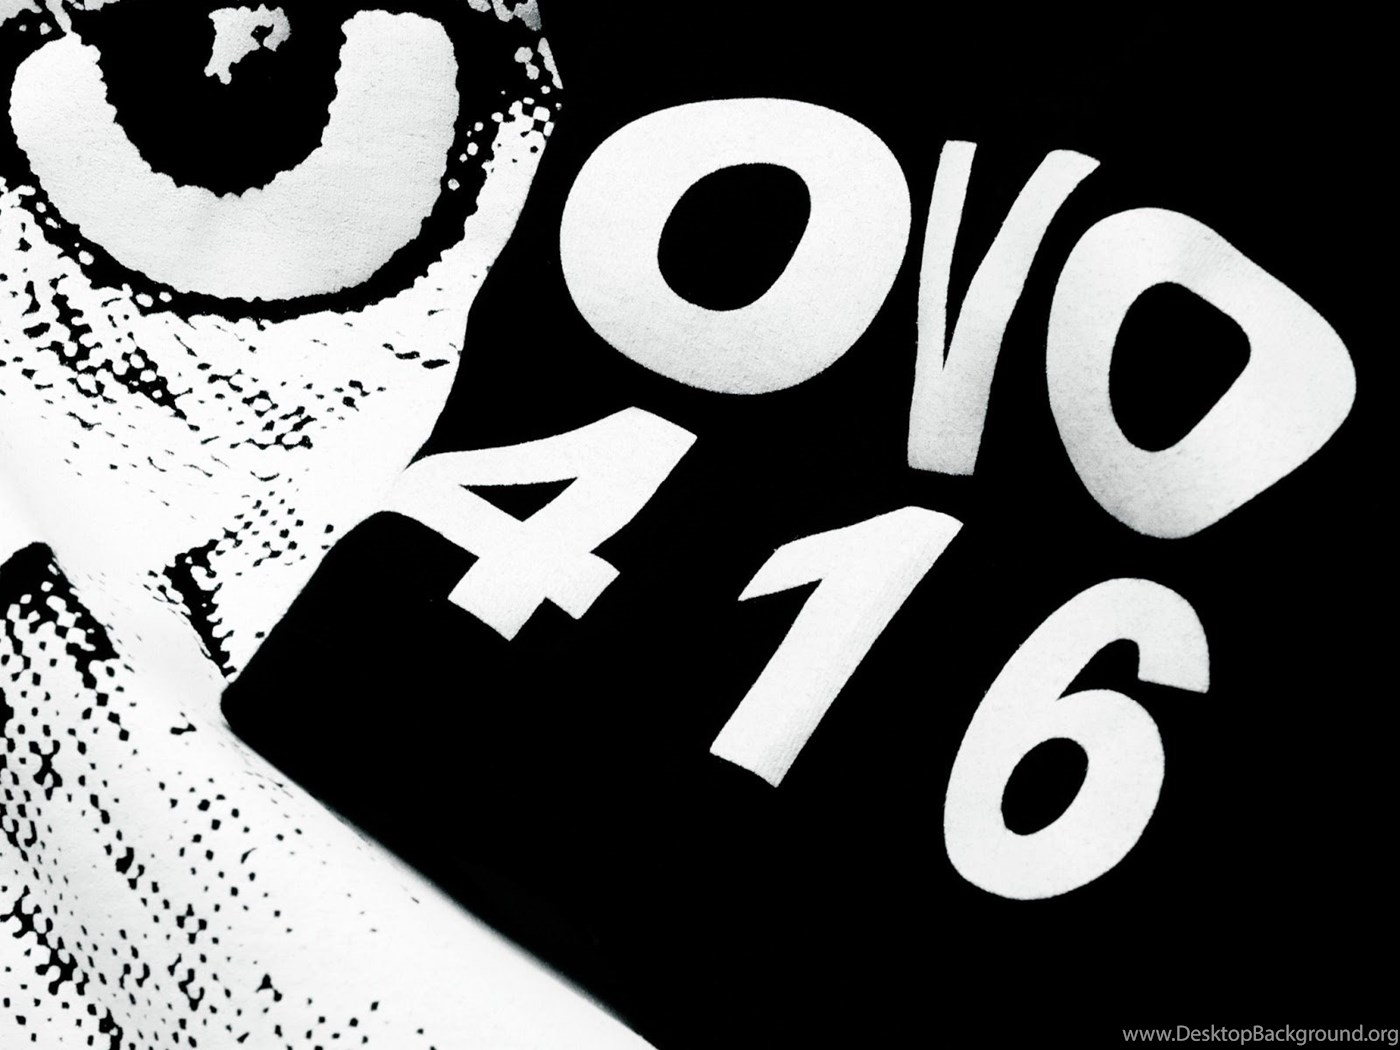 Drake Ovo Owl Iphone Wallpapers Wallpapers Coc Desktop Background